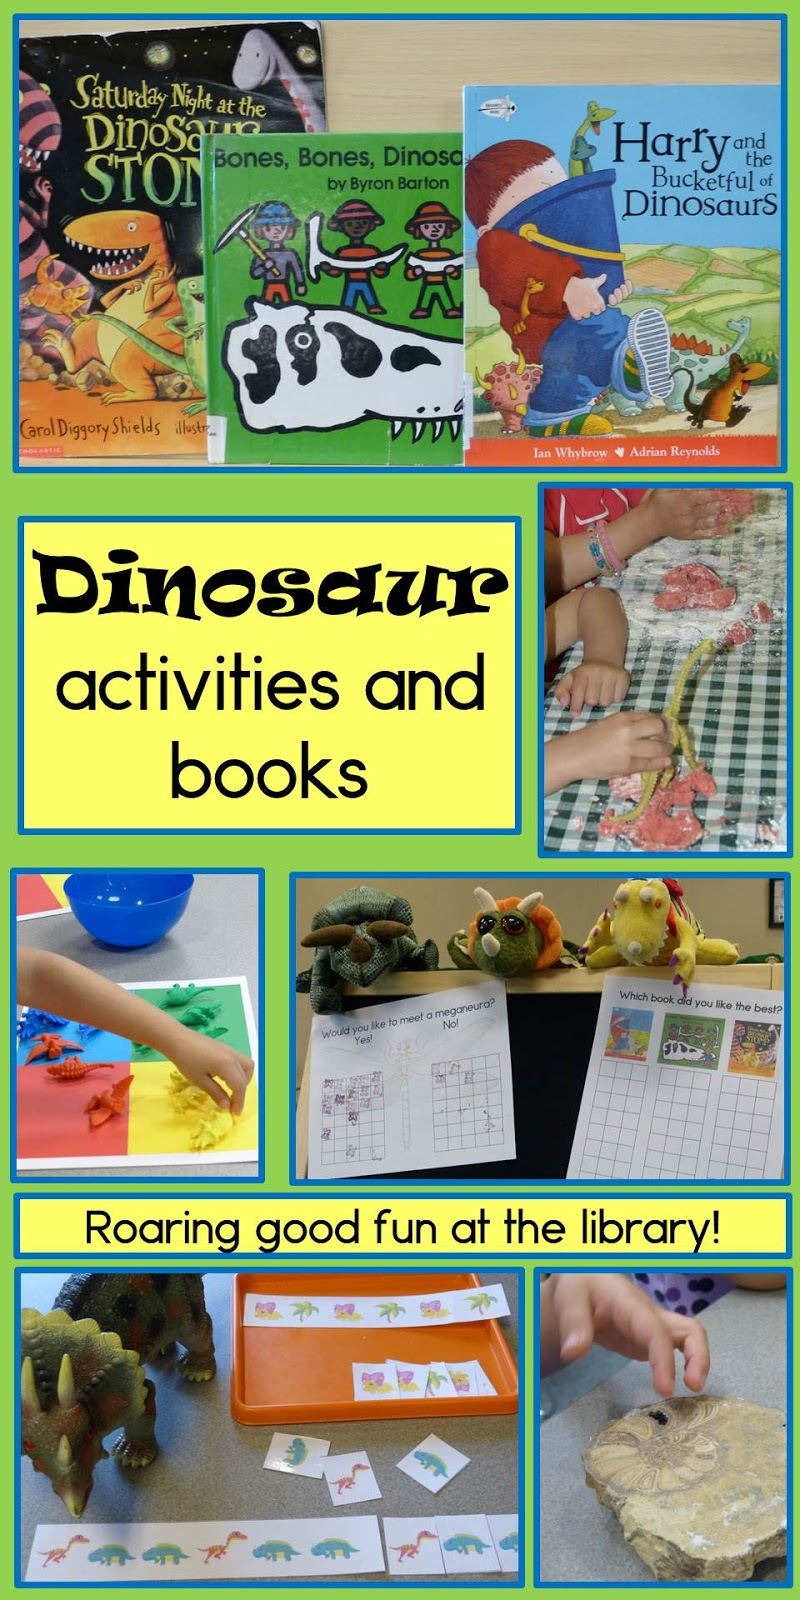 paula 39 s primary classroom dinosaur activities and books roaring good fun. Black Bedroom Furniture Sets. Home Design Ideas